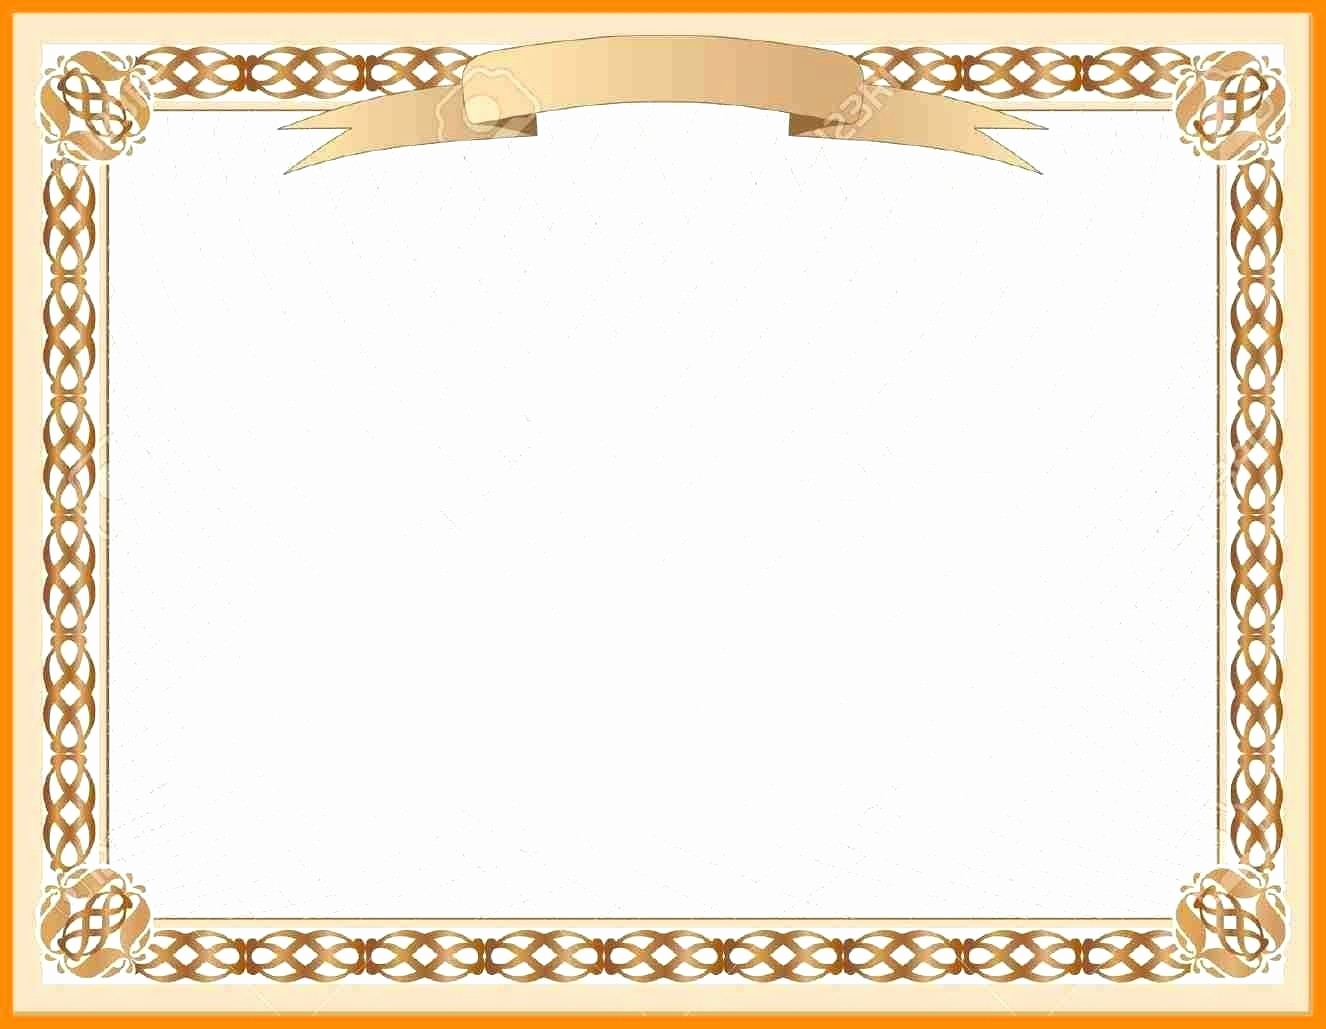 Certificate Border Design Free Download Unique Template Certificate Border Design Template Black for